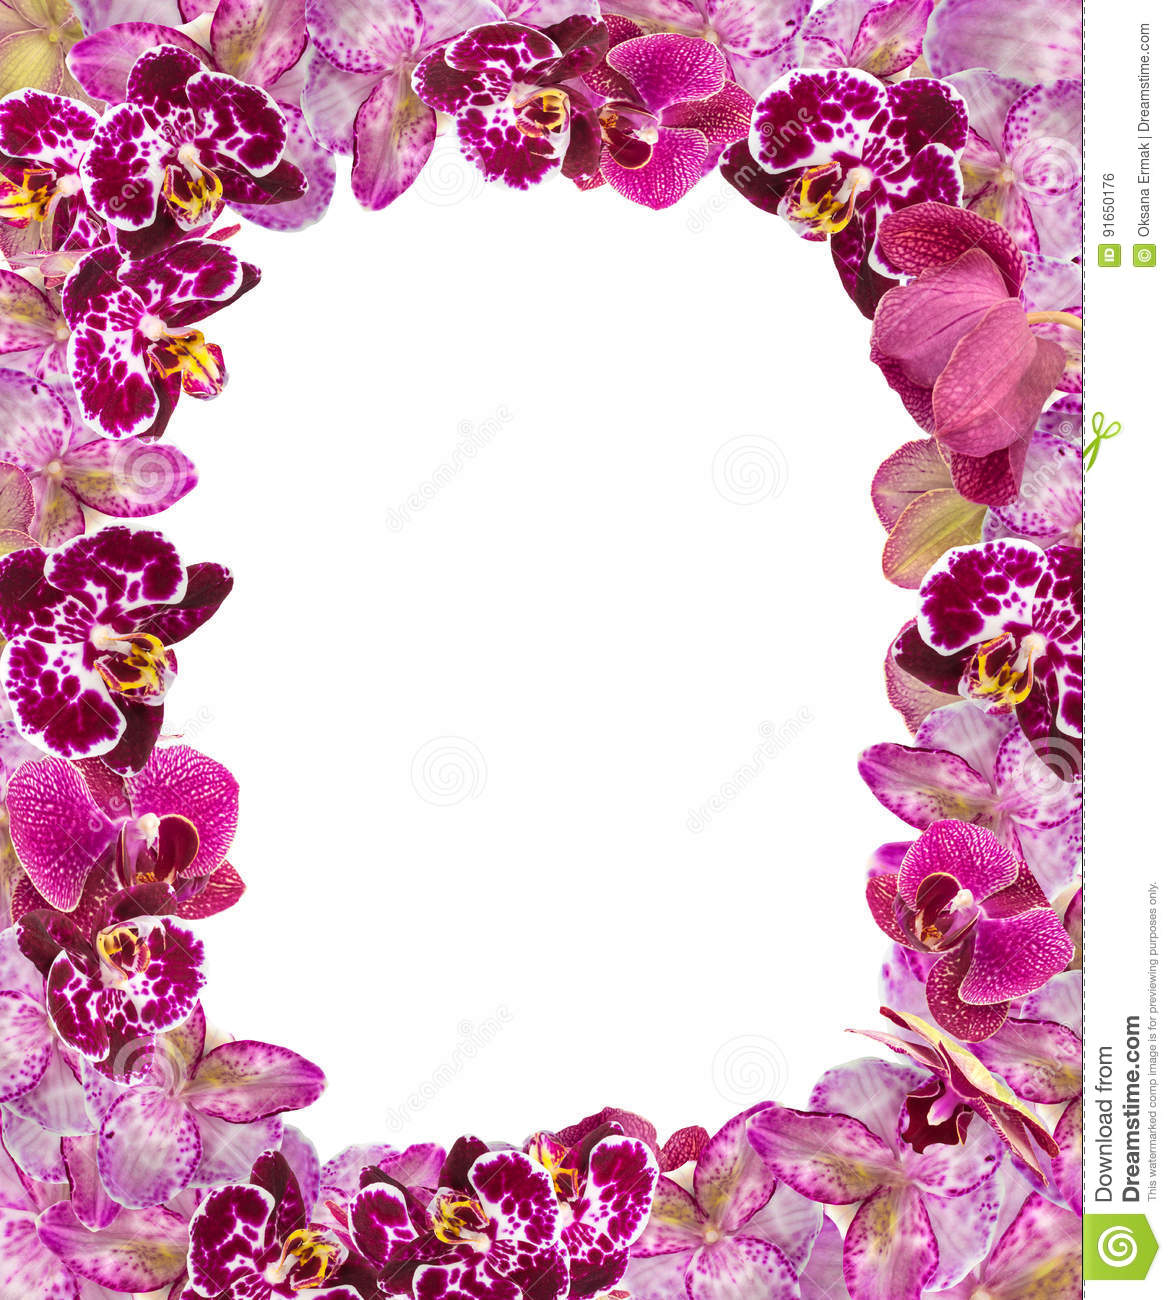 beautiful pink orchids border for greeting card or lovely flower frame stock photo image 91650176. Black Bedroom Furniture Sets. Home Design Ideas